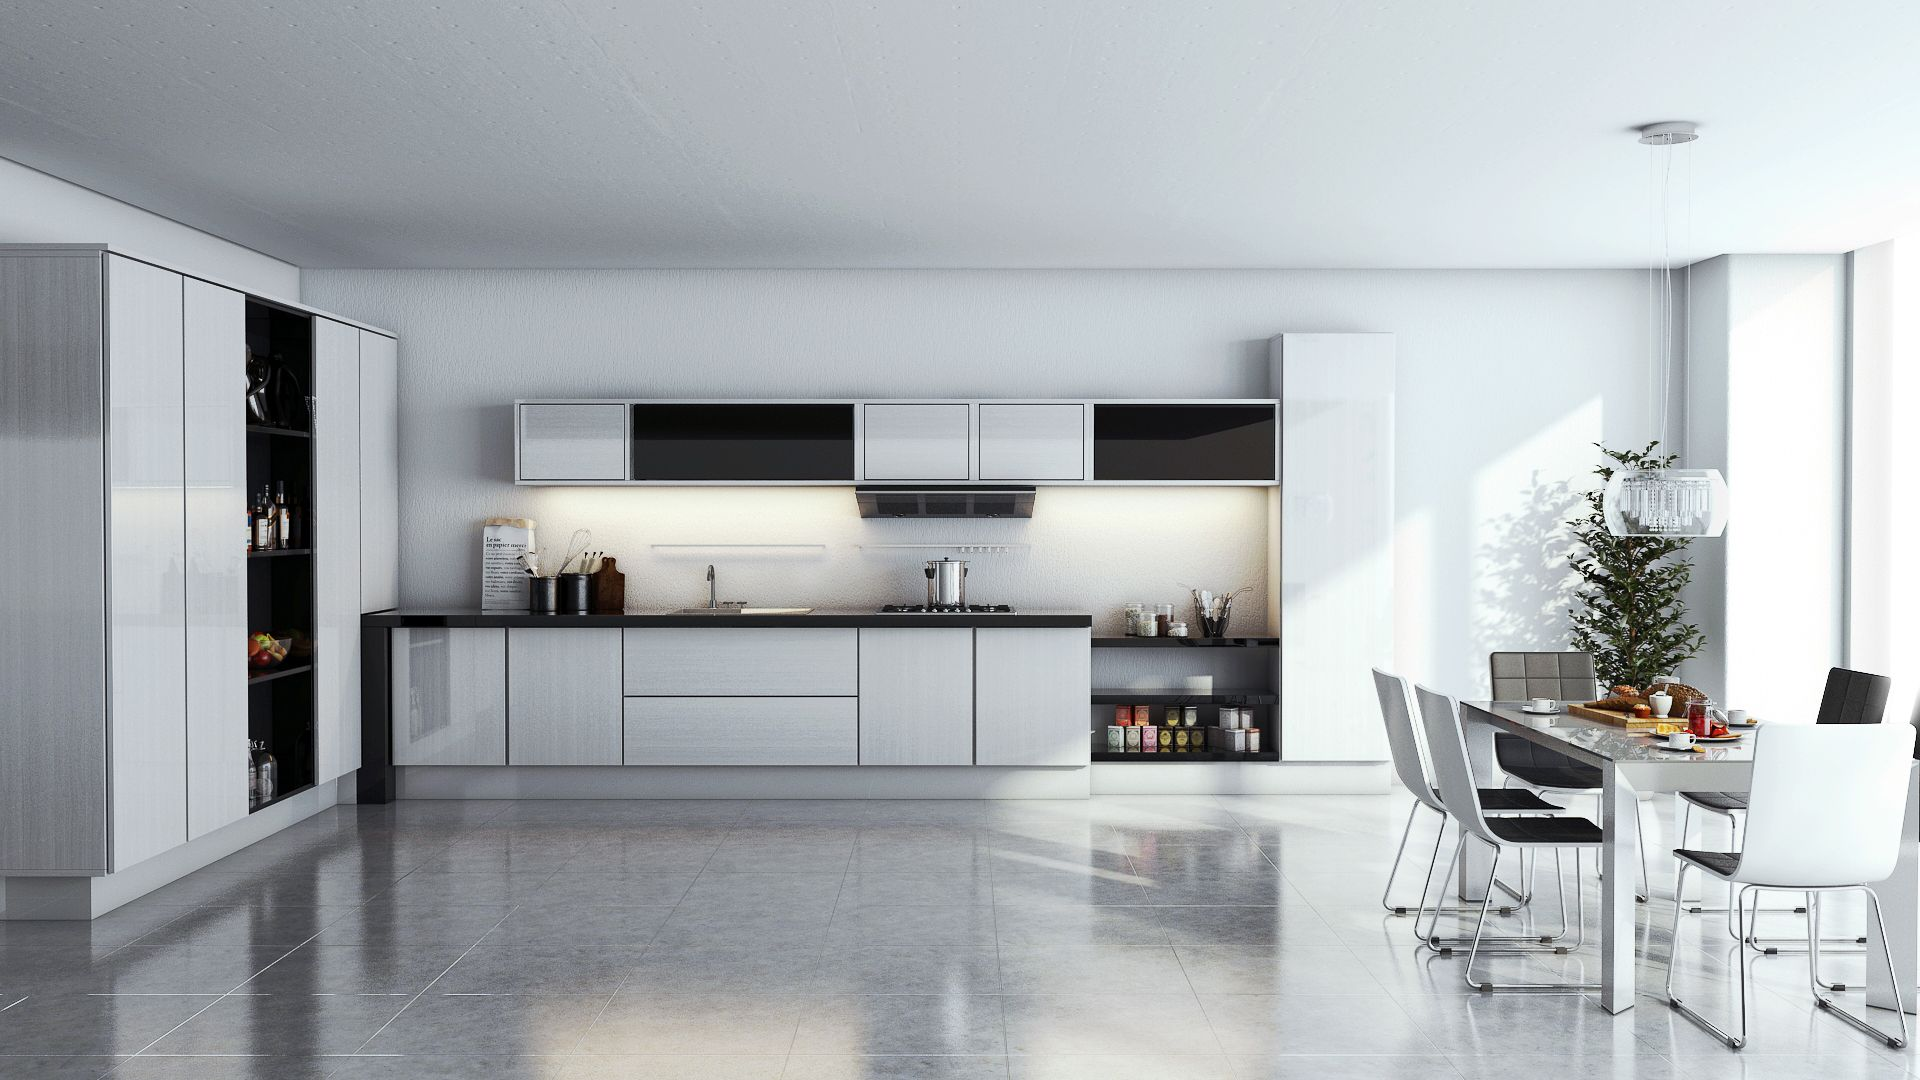 Interior Design Kitchen and Dinning Room 3ds Max